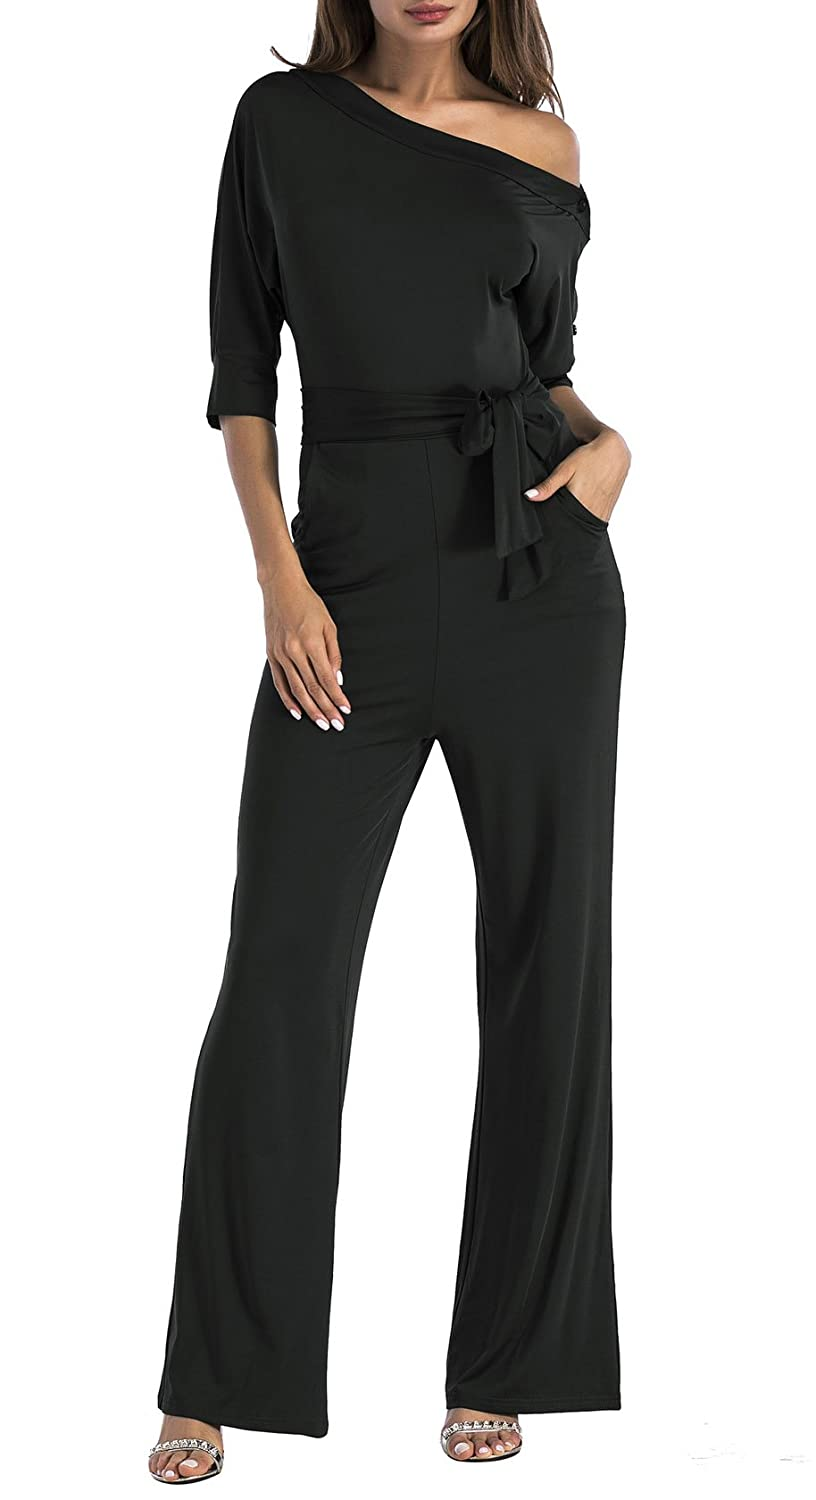 c38594c3ad5 Top 10 wholesale One Shoulder Long Sleeve Jumpsuit - Chinabrands.com